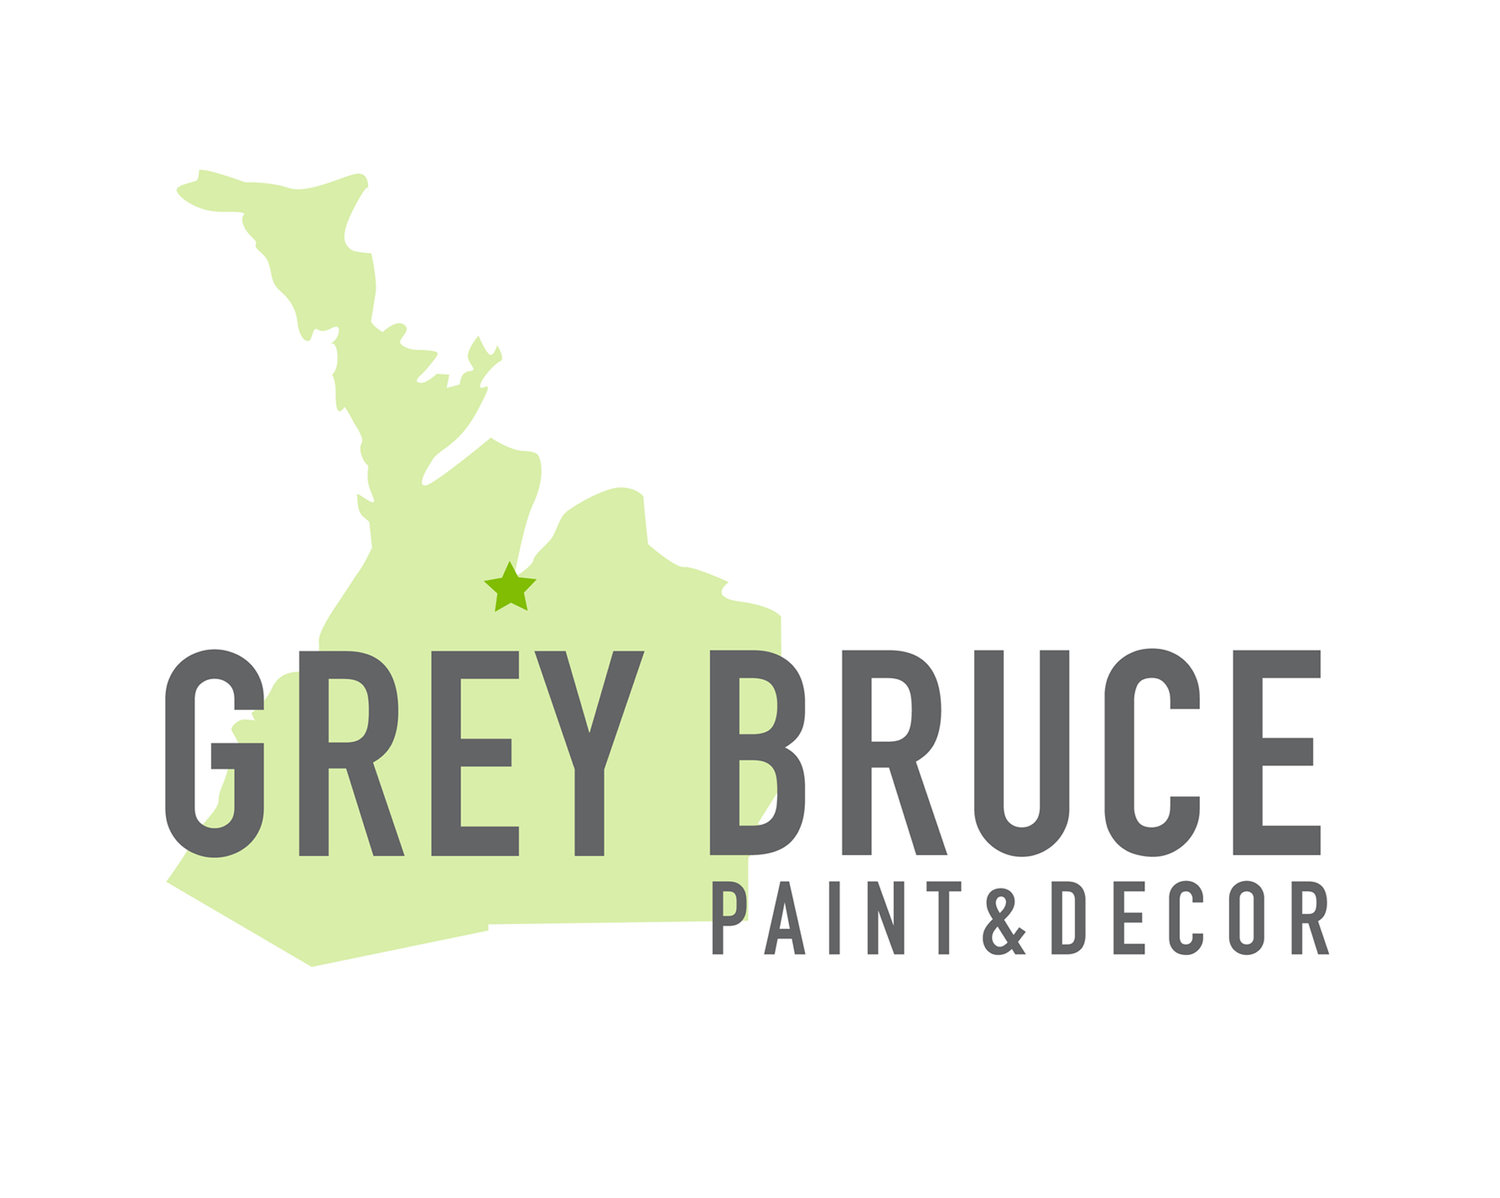 Grey Bruce Paint & Decor